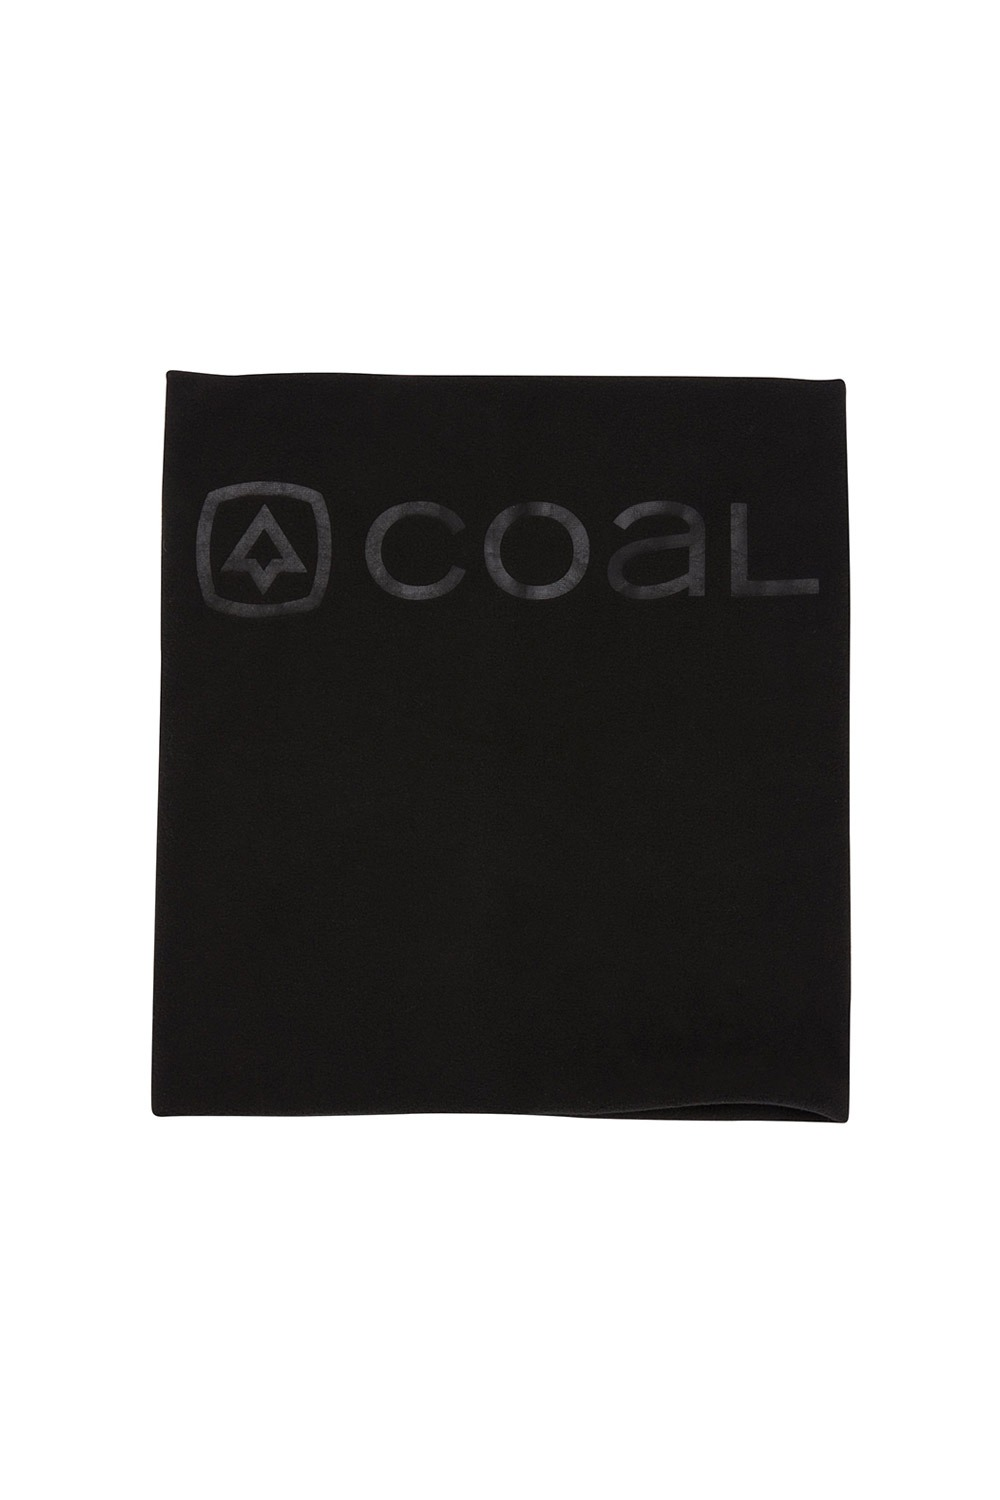 2021 콜 MTF게이터 넥워머  COAL THE MTF GAITER_BLK (BLACK)_DLCA004BK